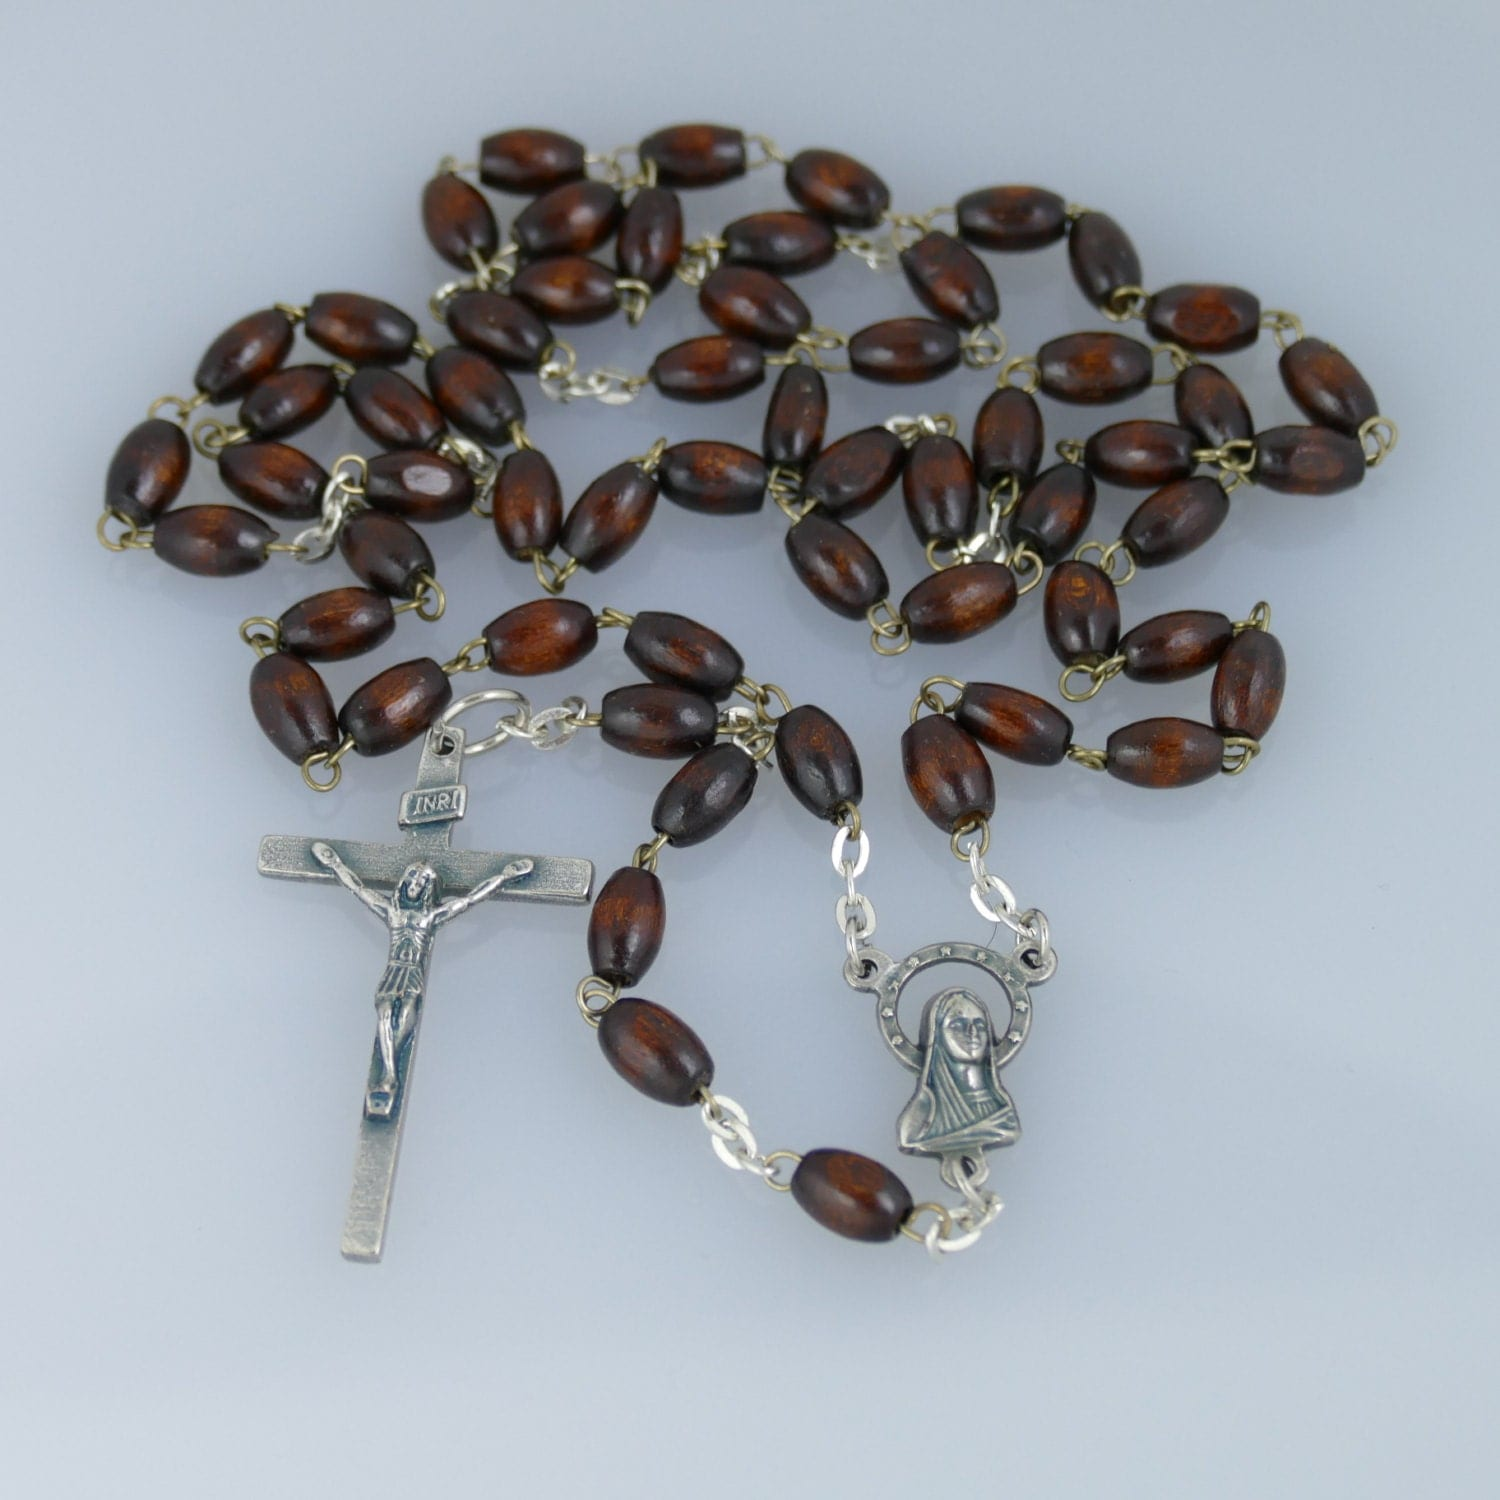 wood bead rosary necklace by pithuahua on etsy